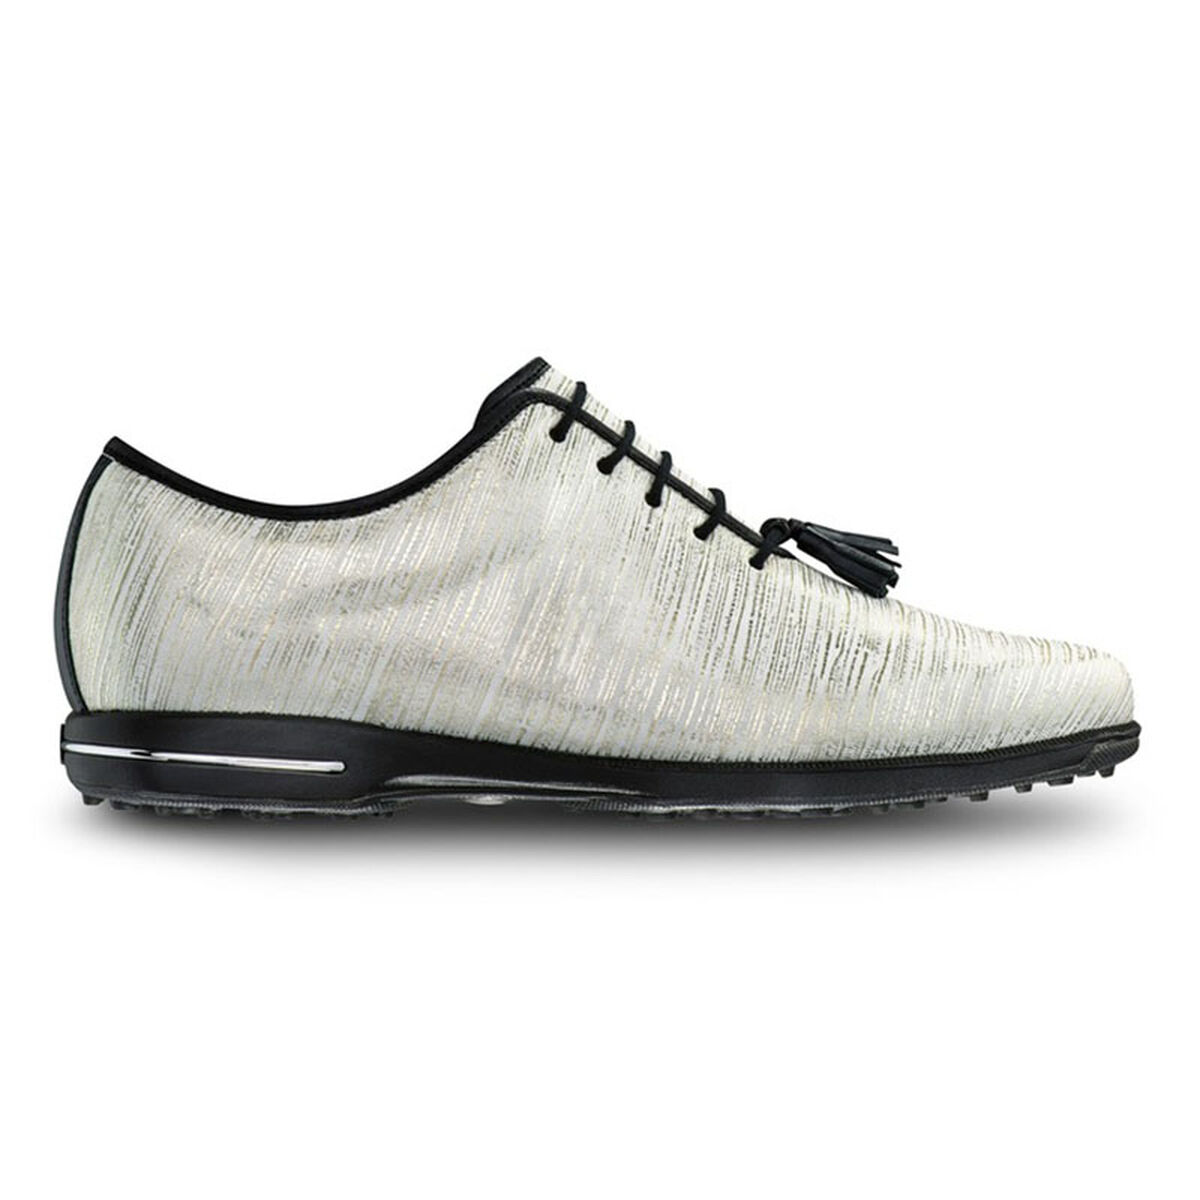 d455f24a287df FootJoy Tailored Collection Women's Golf Shoe - Gold